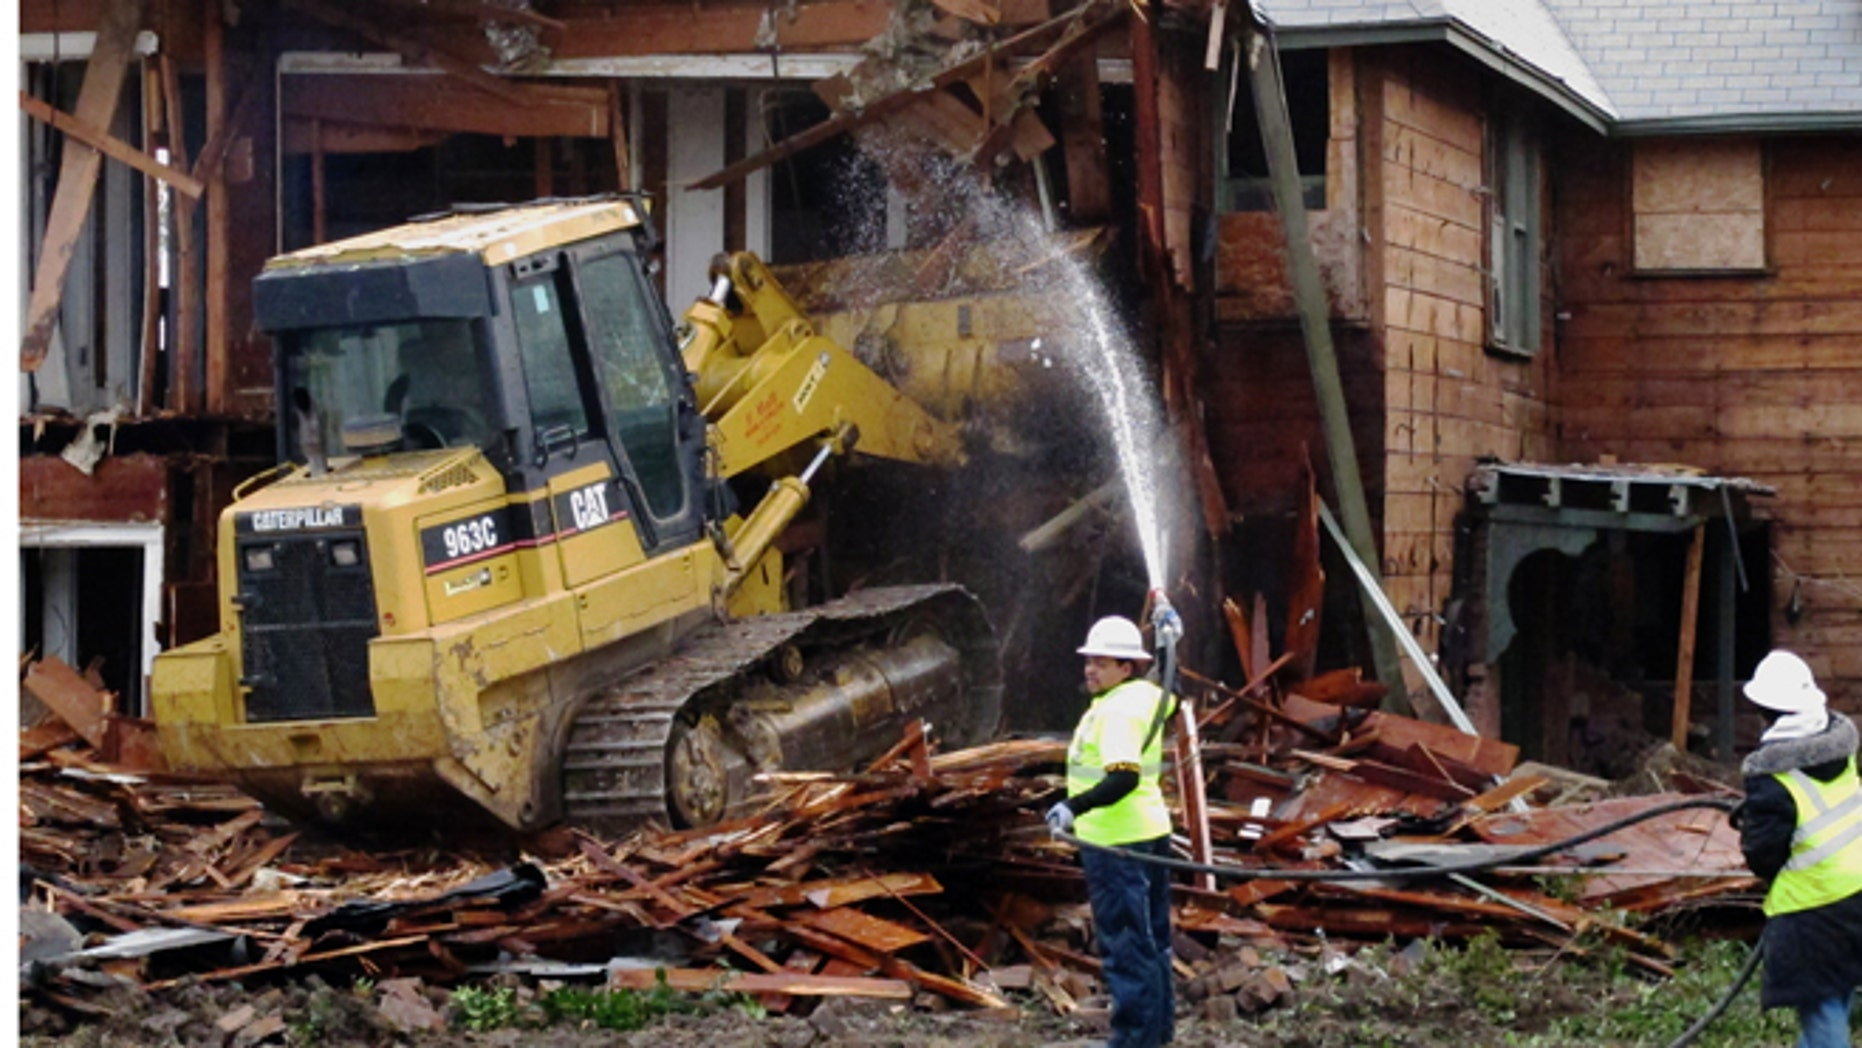 Jan. 14, 2013: A bulldozer is used to demolish a two-story apartment building  in Dallas, Texas where Lee Harvey Oswald briefly lived before assassinating President John F. Kennedy.